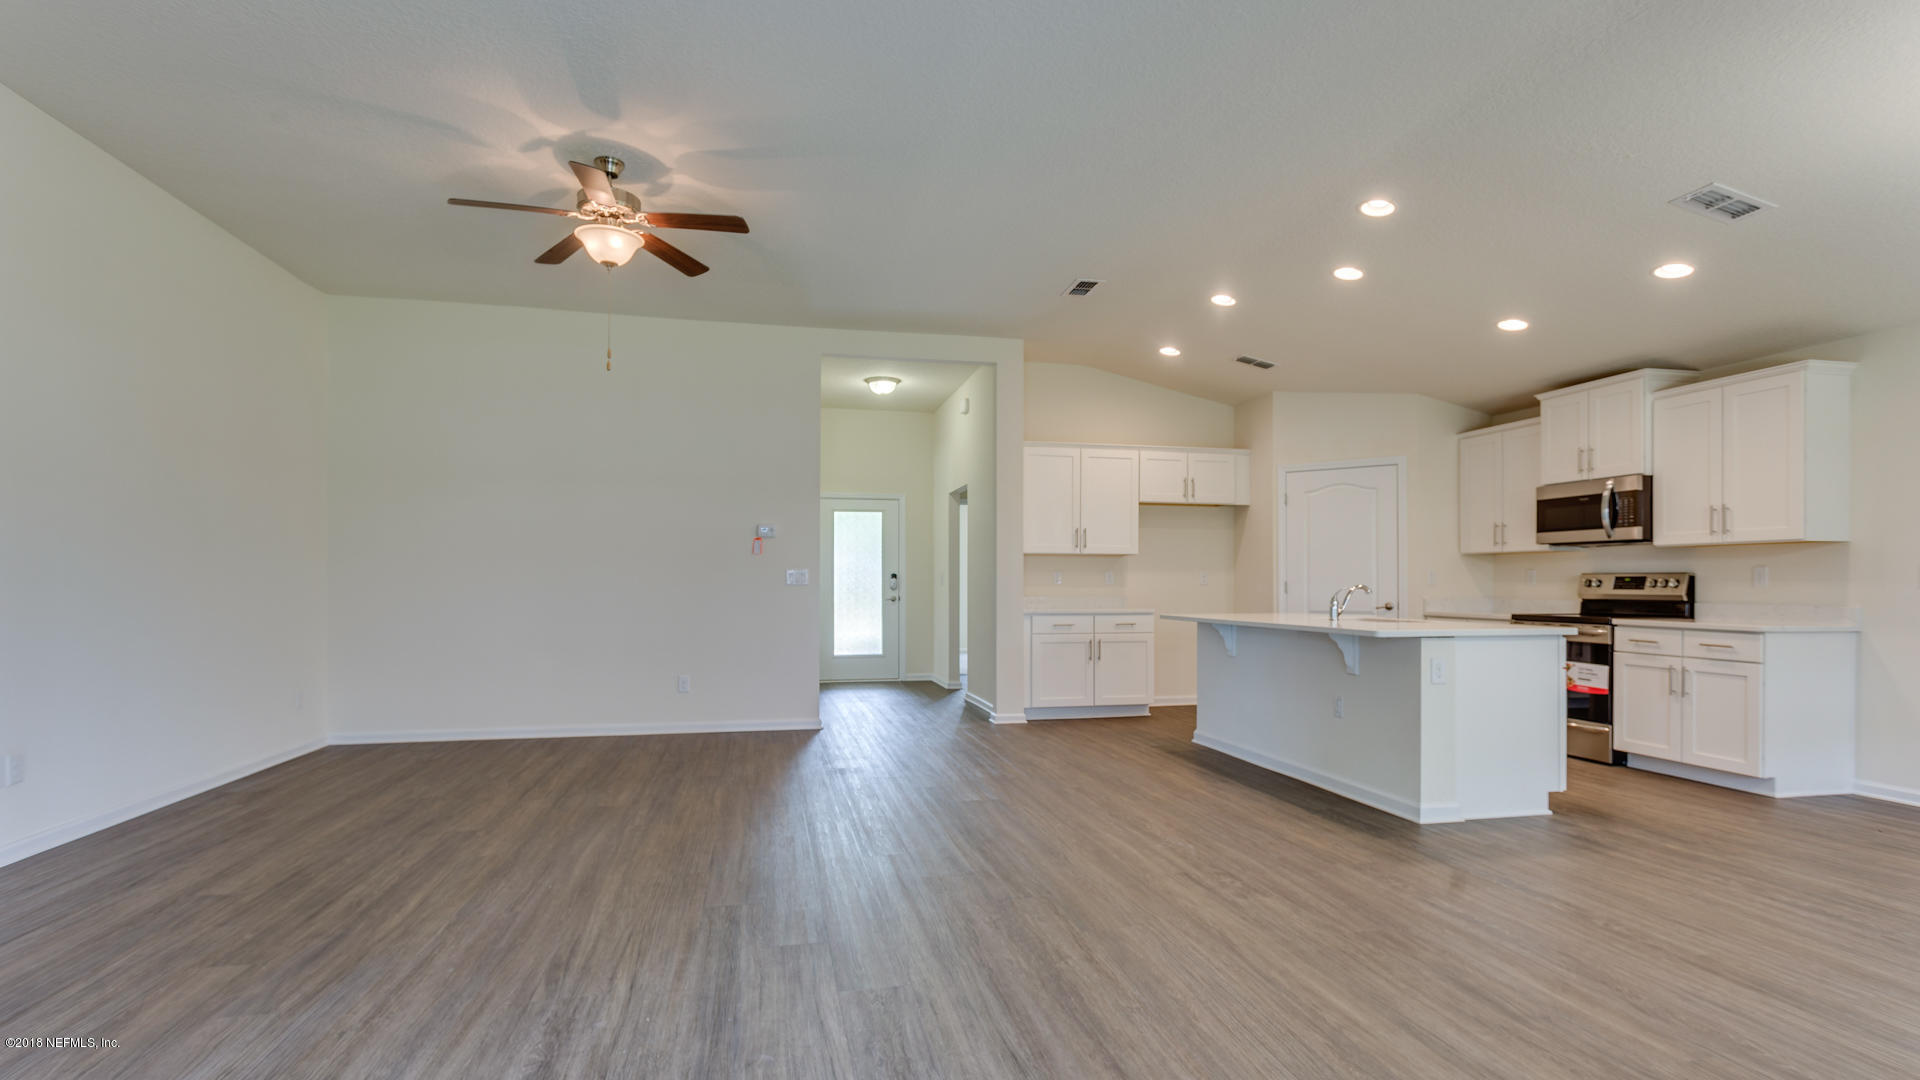 195 PALACE, ST AUGUSTINE, FLORIDA 32084, 3 Bedrooms Bedrooms, ,2 BathroomsBathrooms,Residential - single family,For sale,PALACE,900699